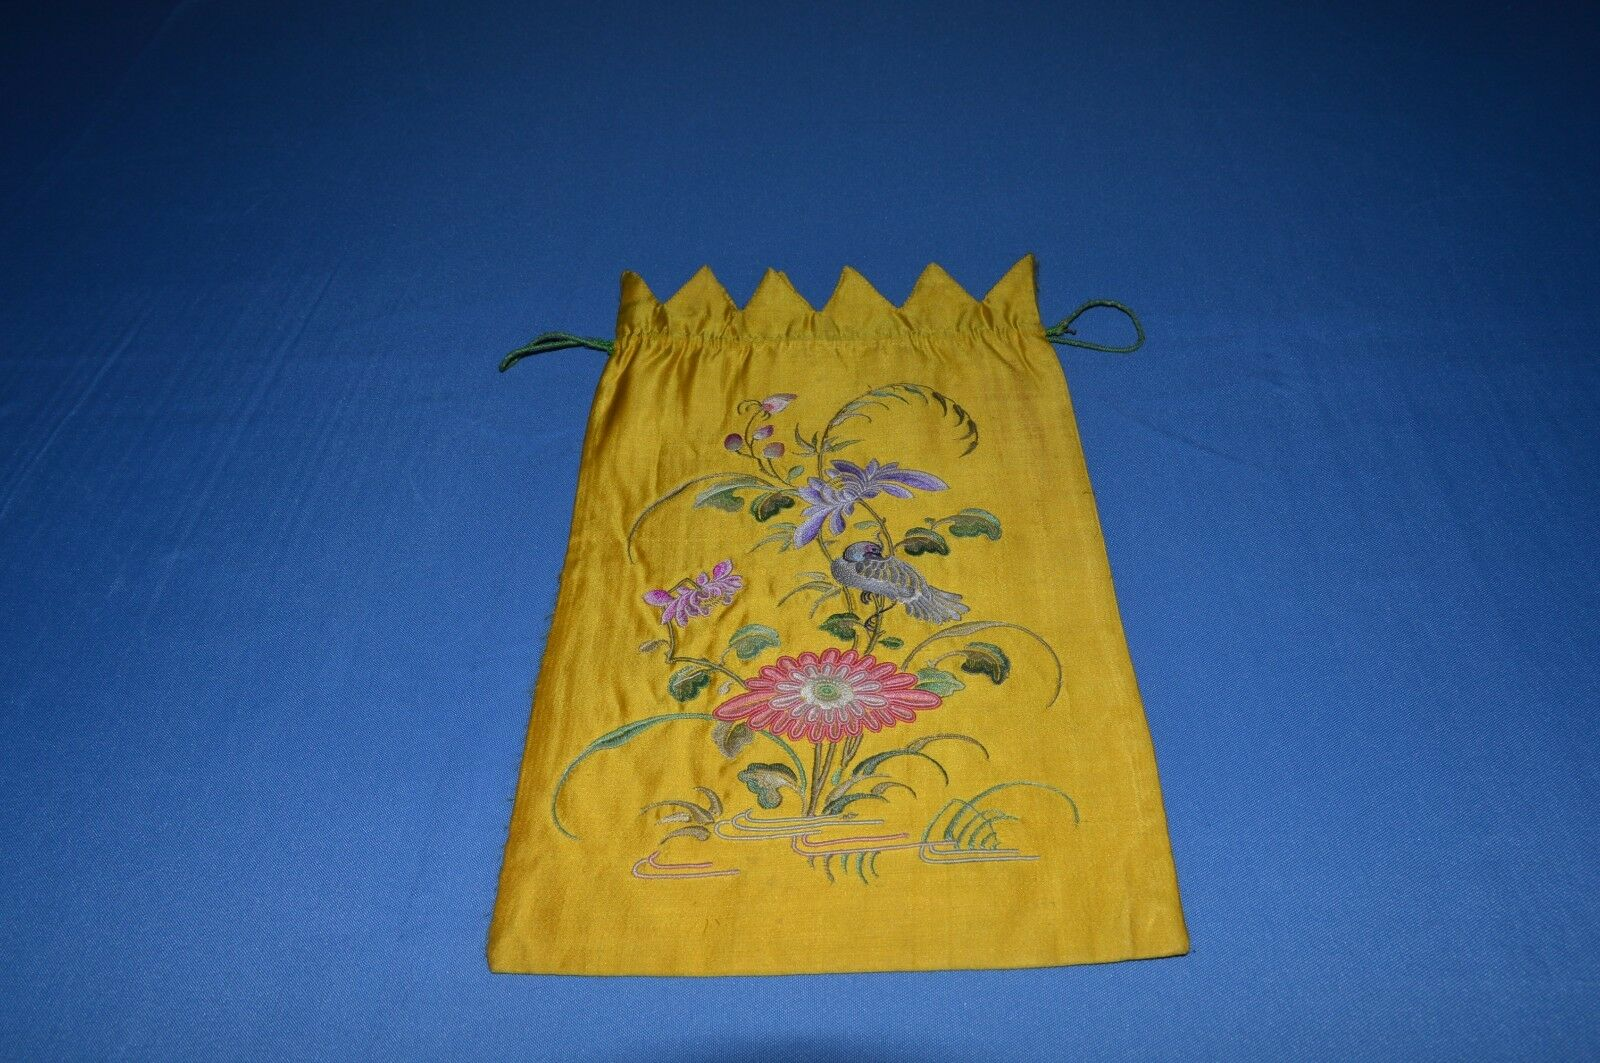 ANTIQUE CHAPLAIN BOURSE SILK EMBROIDERED FLOWERS BIRD  MONOGRAM P.J   19